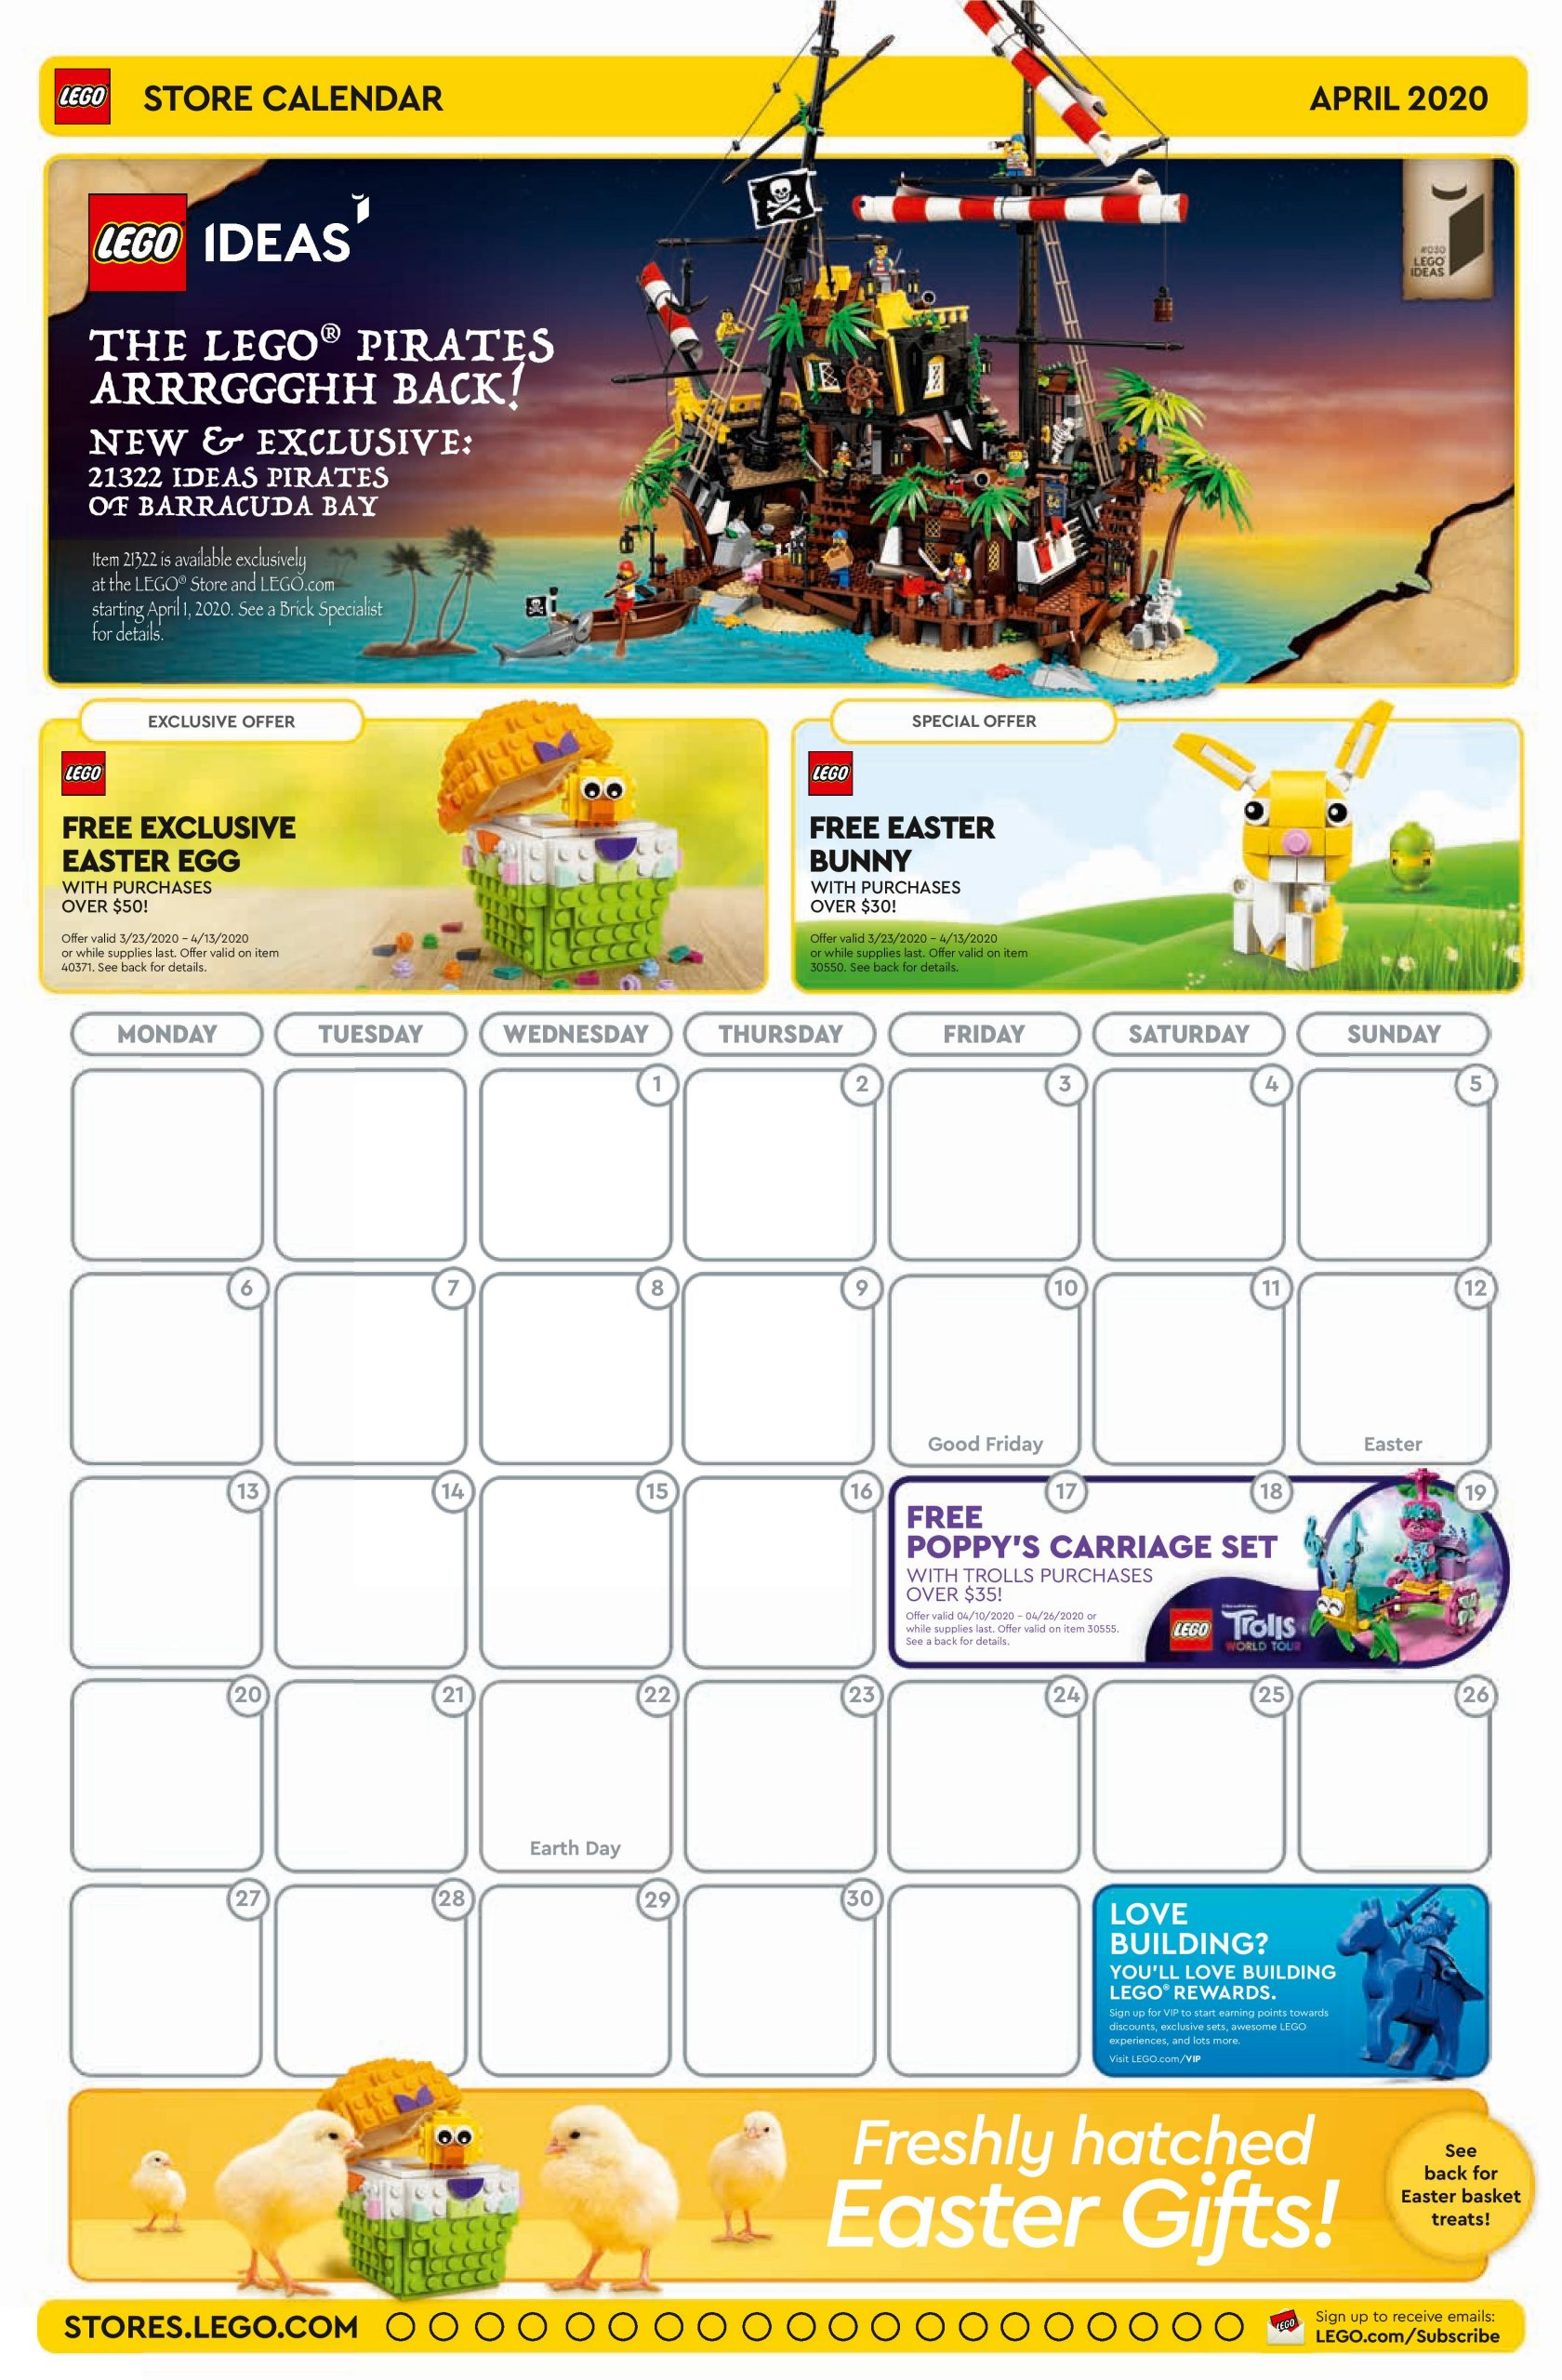 Lego Calendar April 2021 LEGO April 2020 Store Calendar Promotions & Events – The Brick Fan